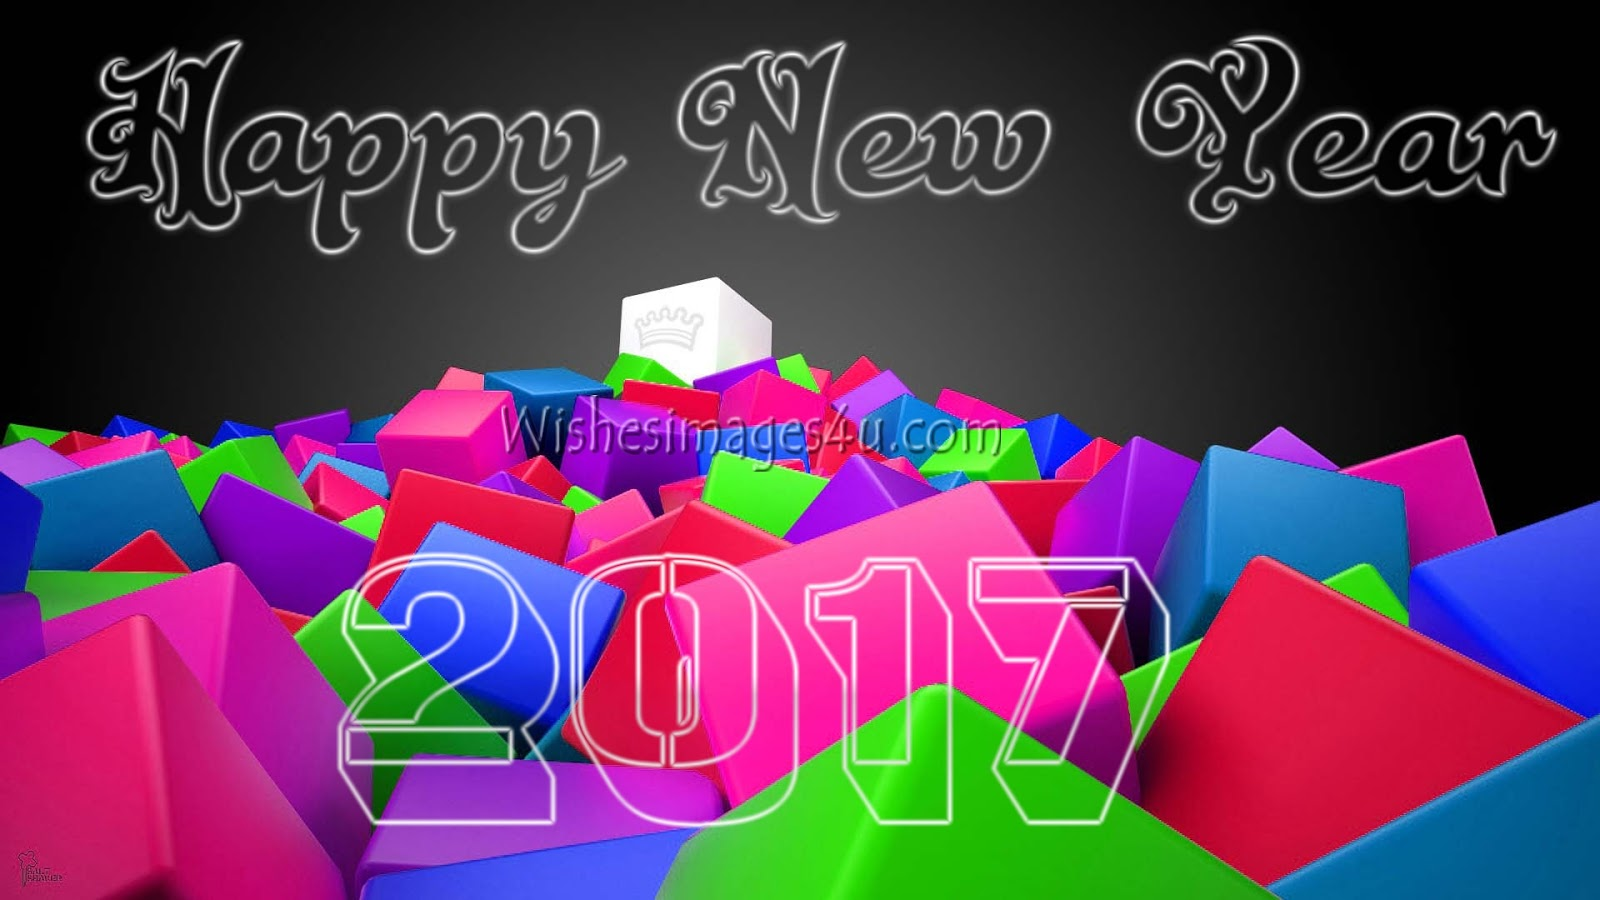 Happy New Year 2018 3D Wallpapers Full HD - New Year 2018 ...